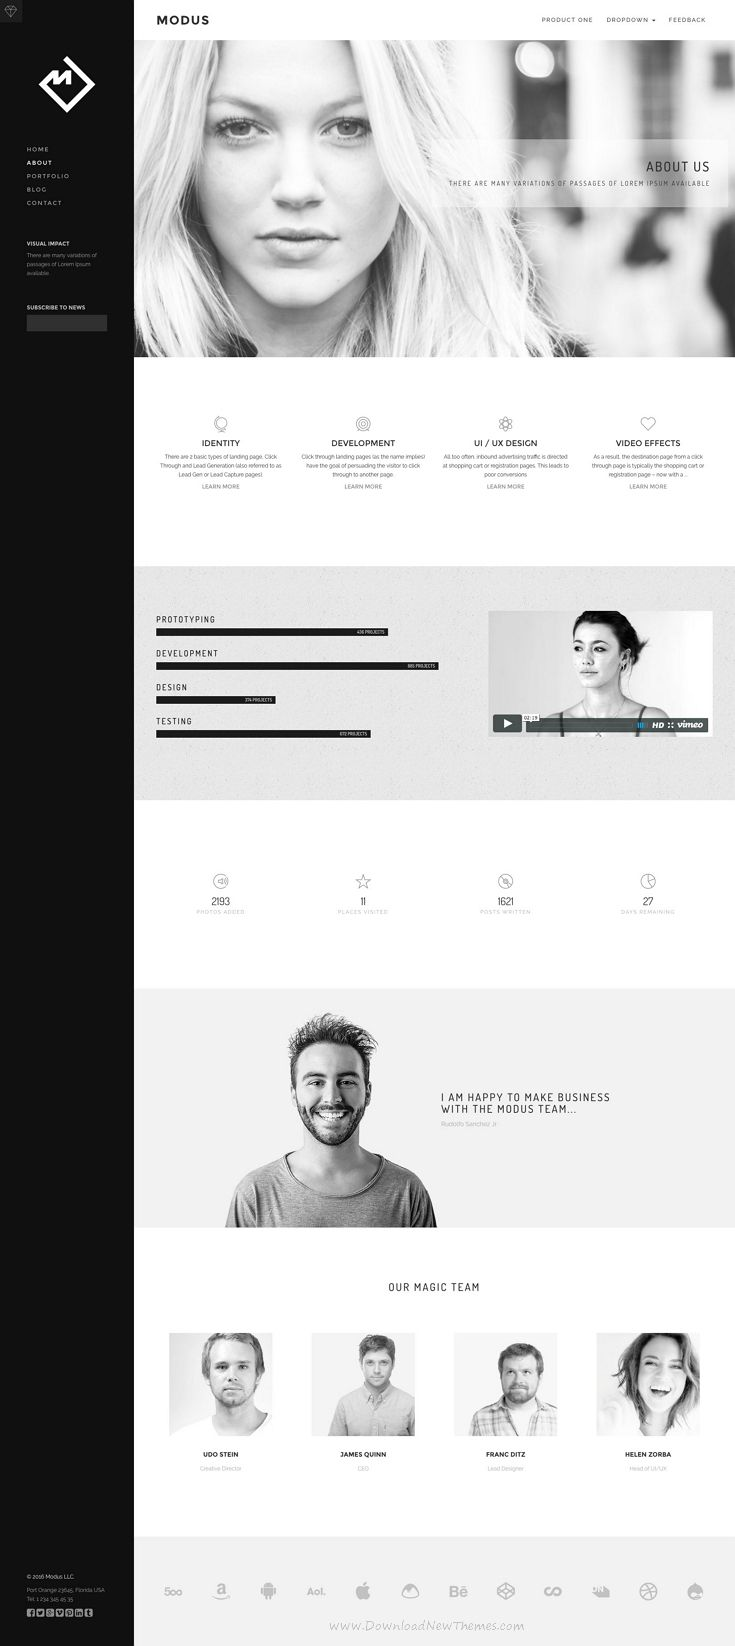 Modus - Agency Portfolio HTML | Website themes, Portfolio website ...